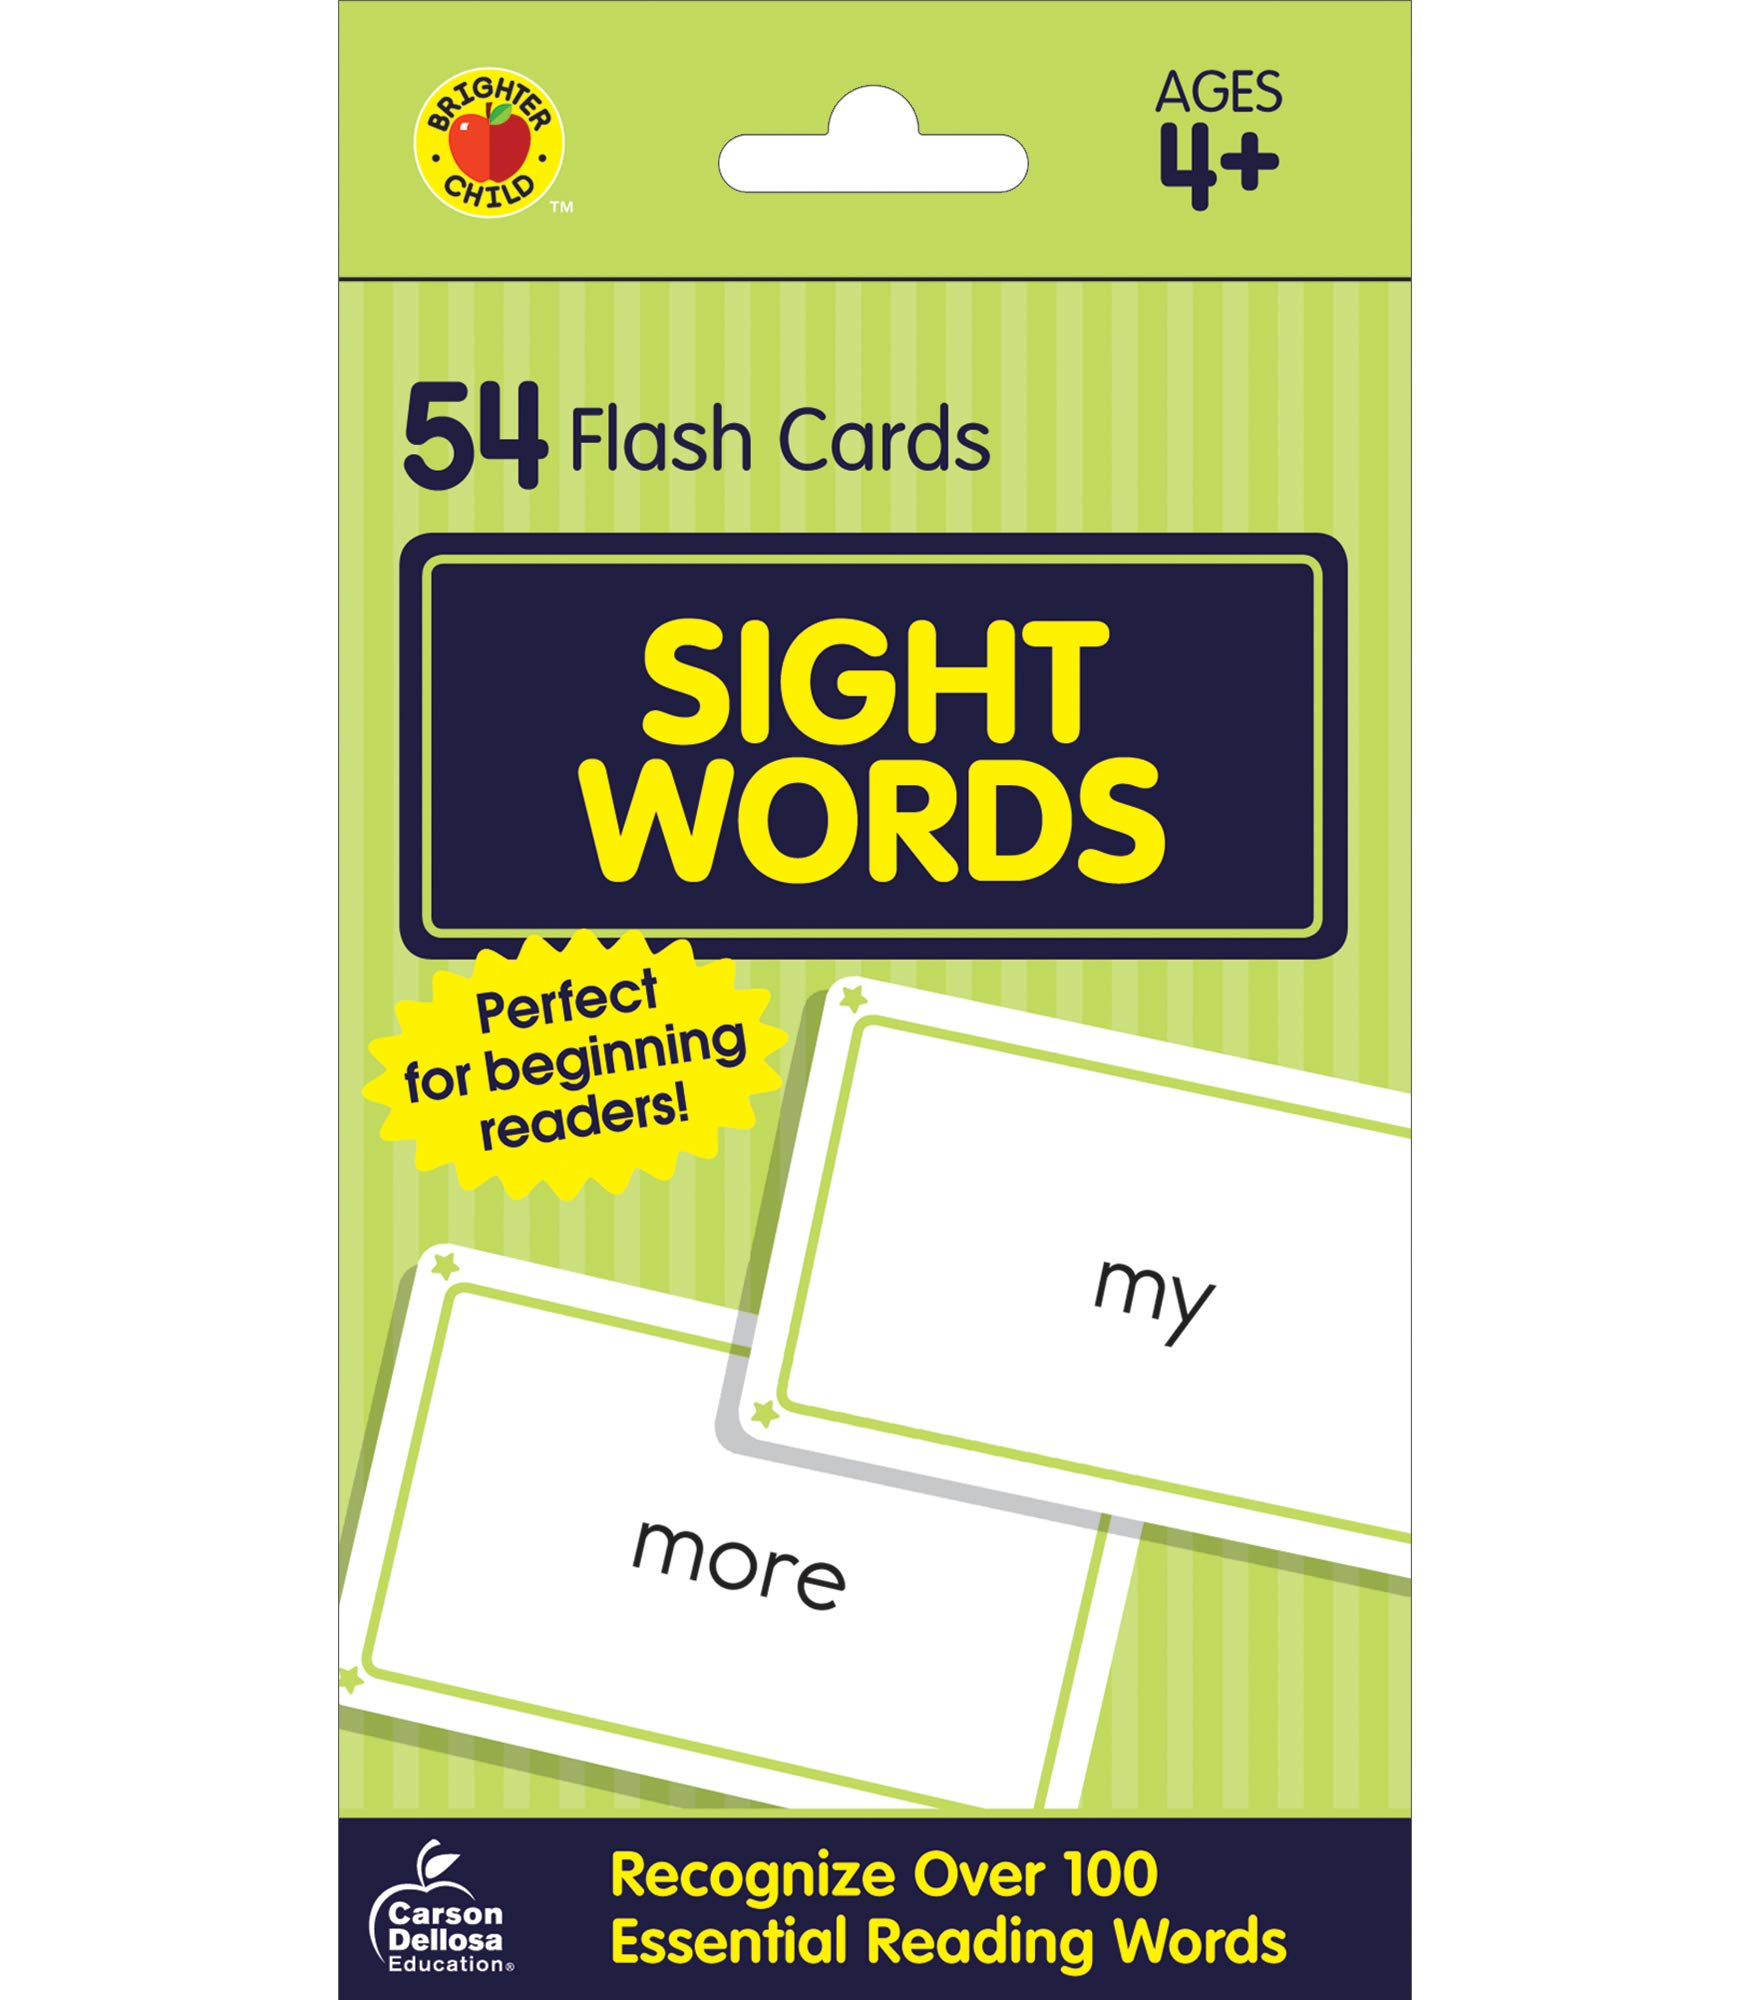 It's just a graphic of Free Printable Sight Word Flashcards for beginner